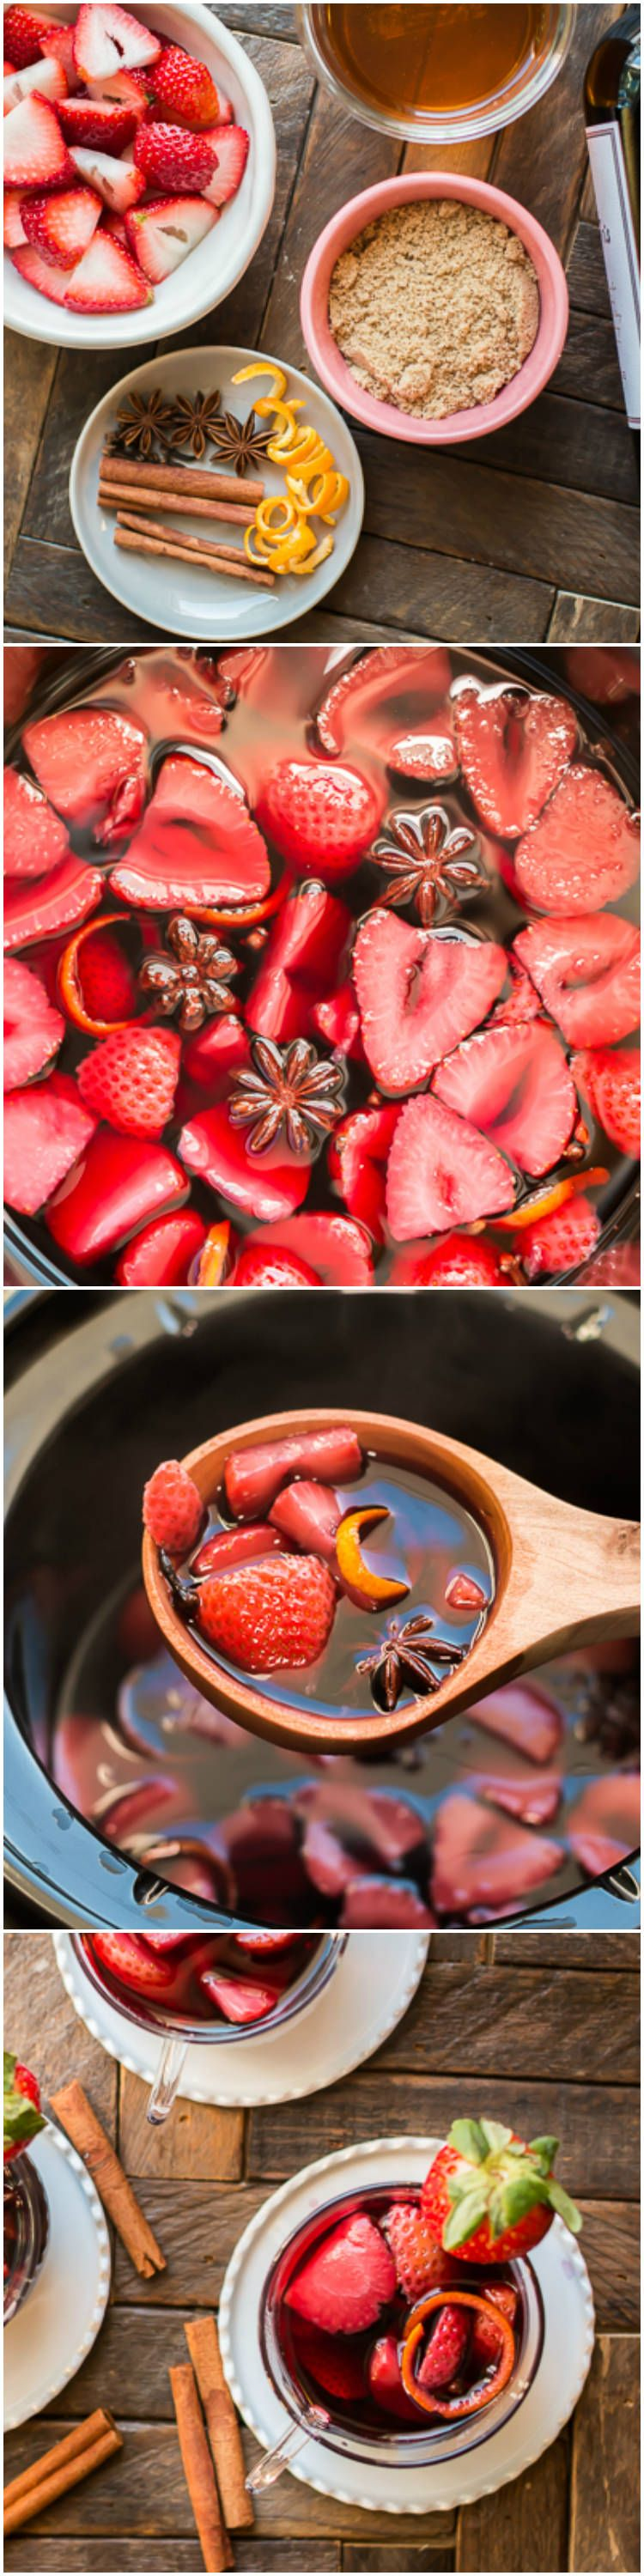 Slow Cooker Strawberry Mulled Wine The Magical Slow Cooker Recipe Recipes Spiced Wine Food